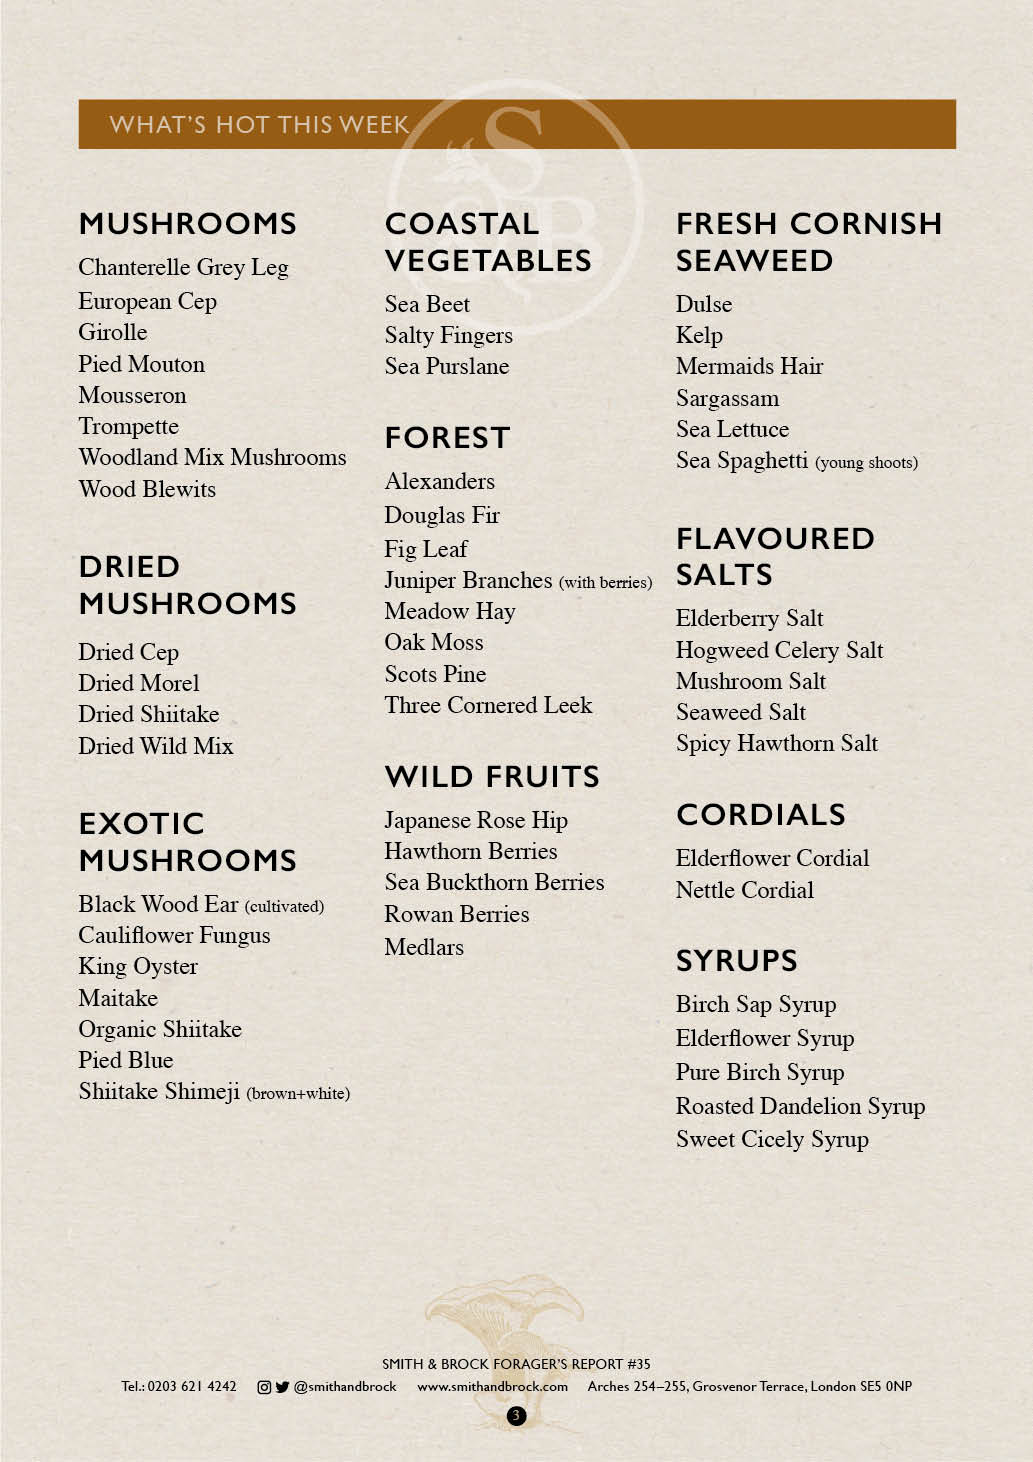 Smith&Brock Foraged Products Report 02 Dec 2019 35 3